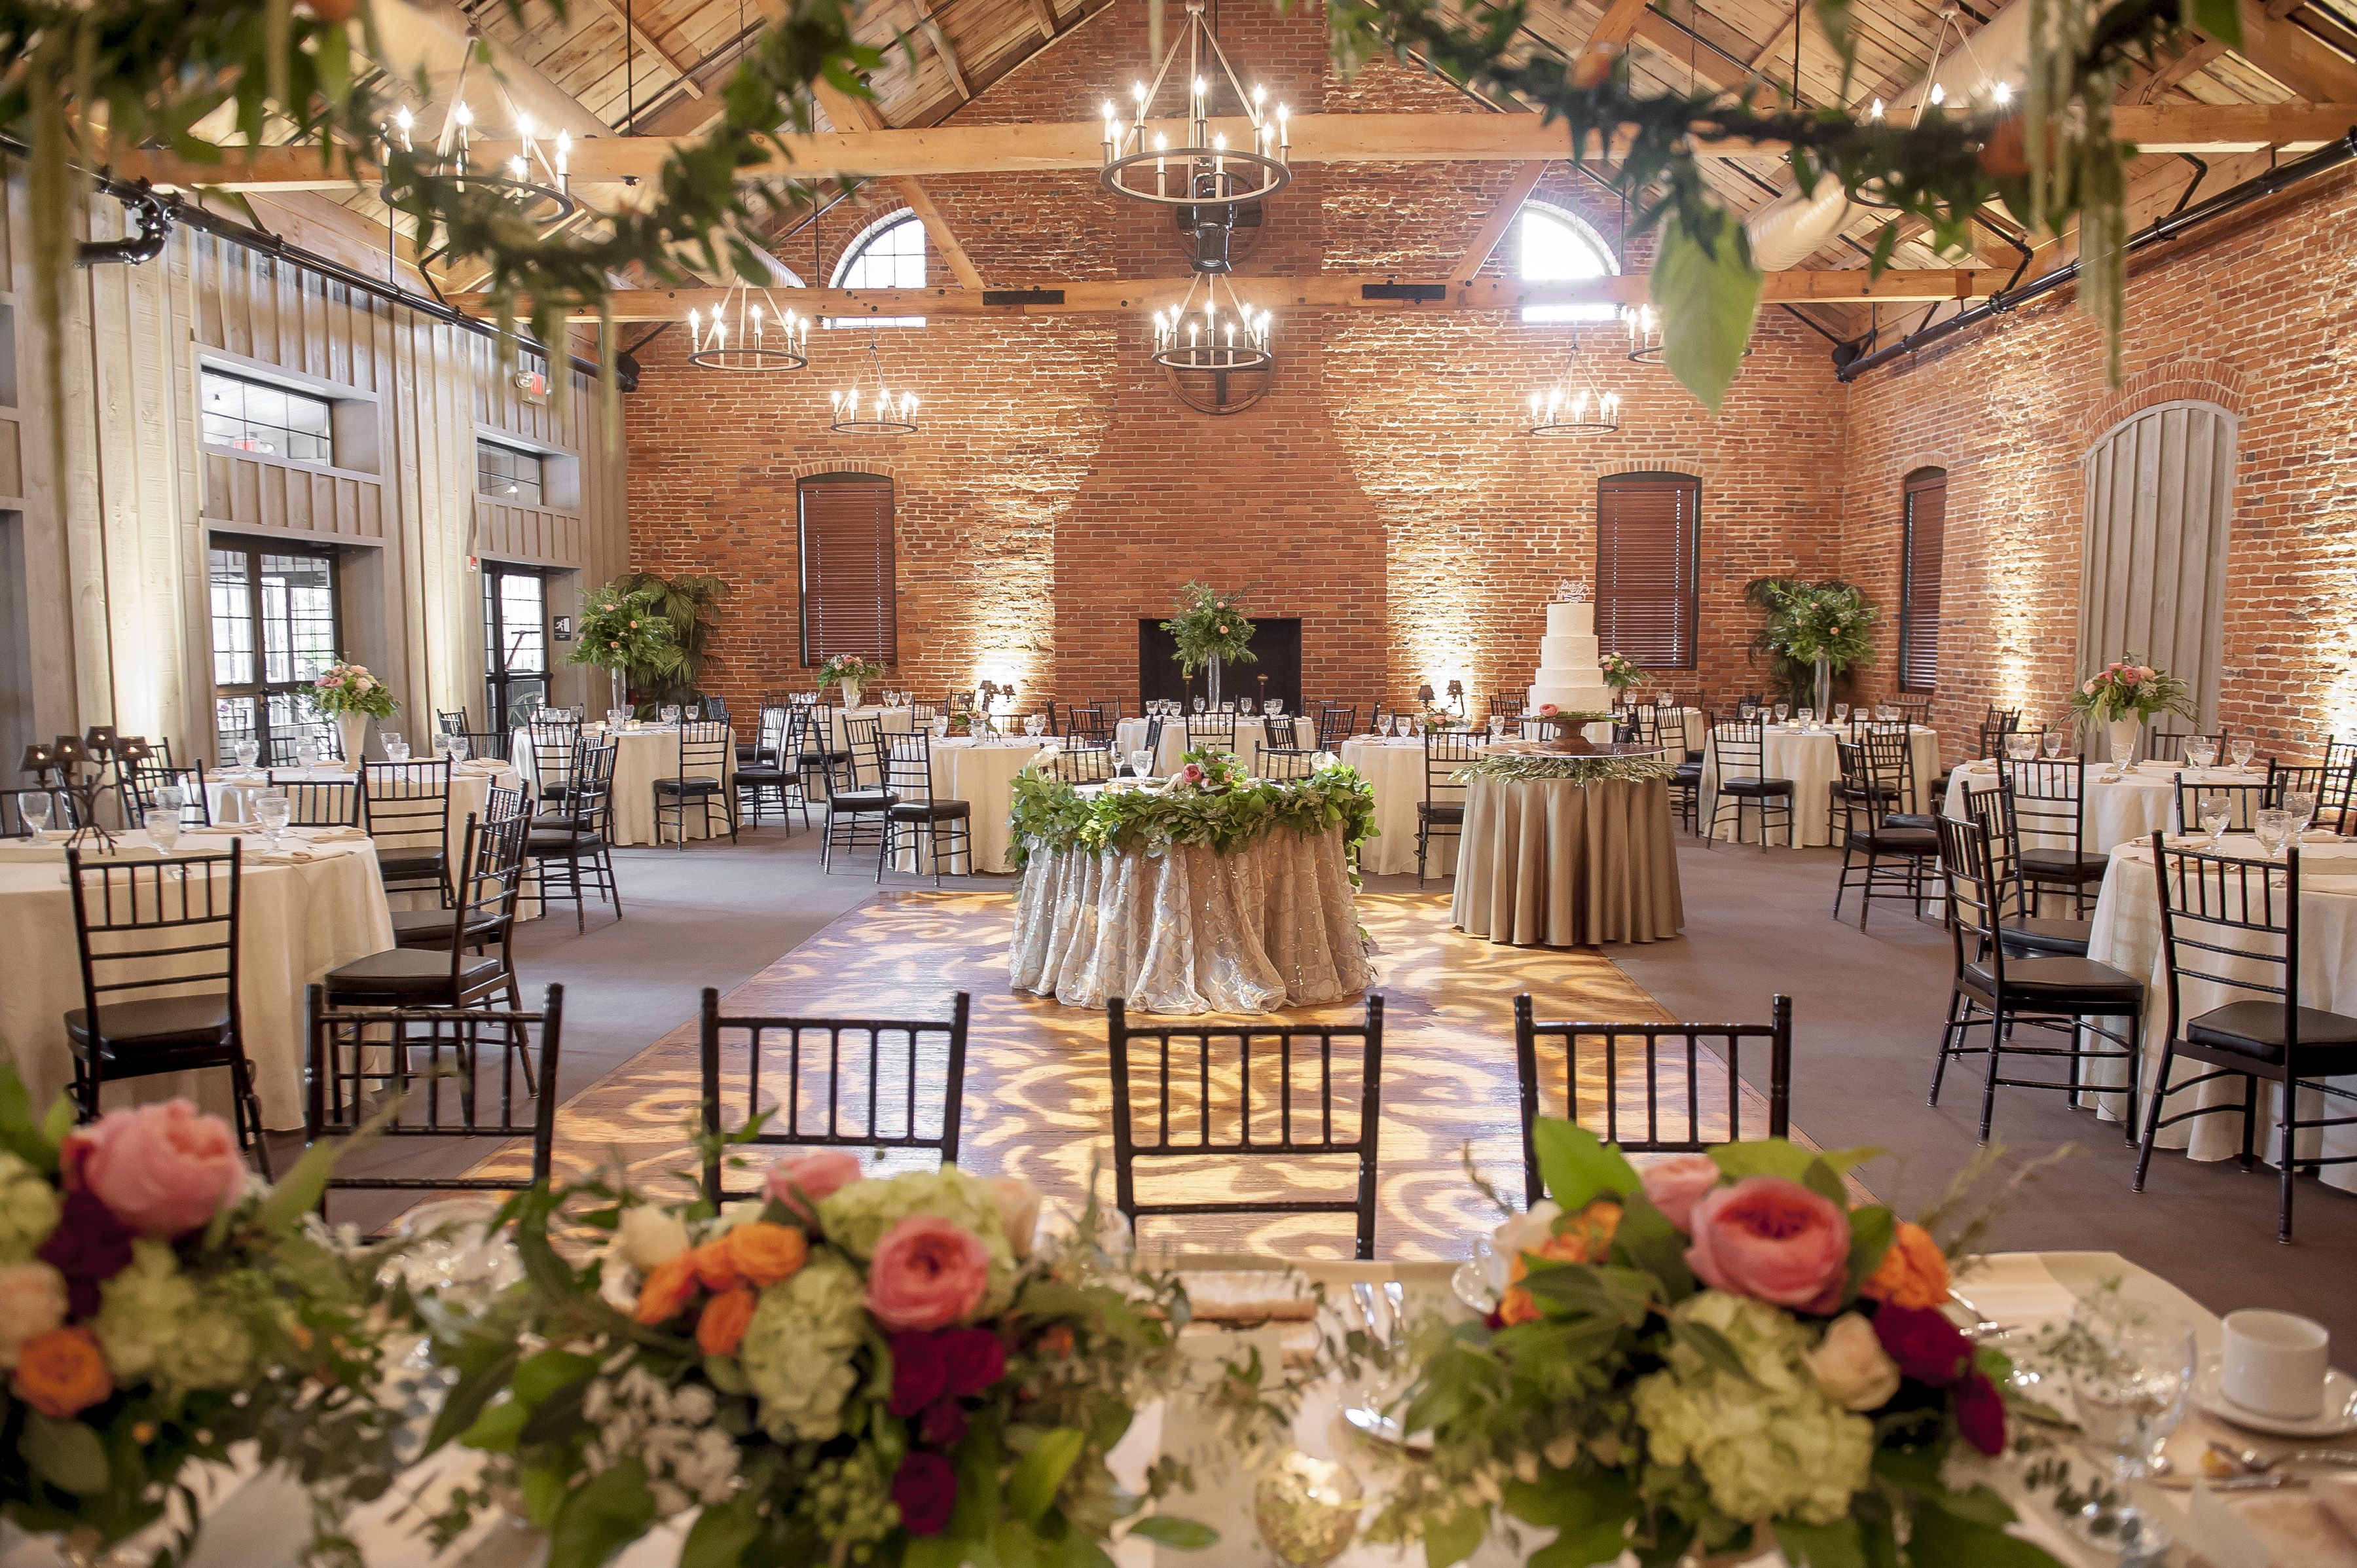 Meg Ty Wedding Pearl Events Austin Camp Lucy Caroline Plus Ben Photography Our Work Pinterest Reception And Venues